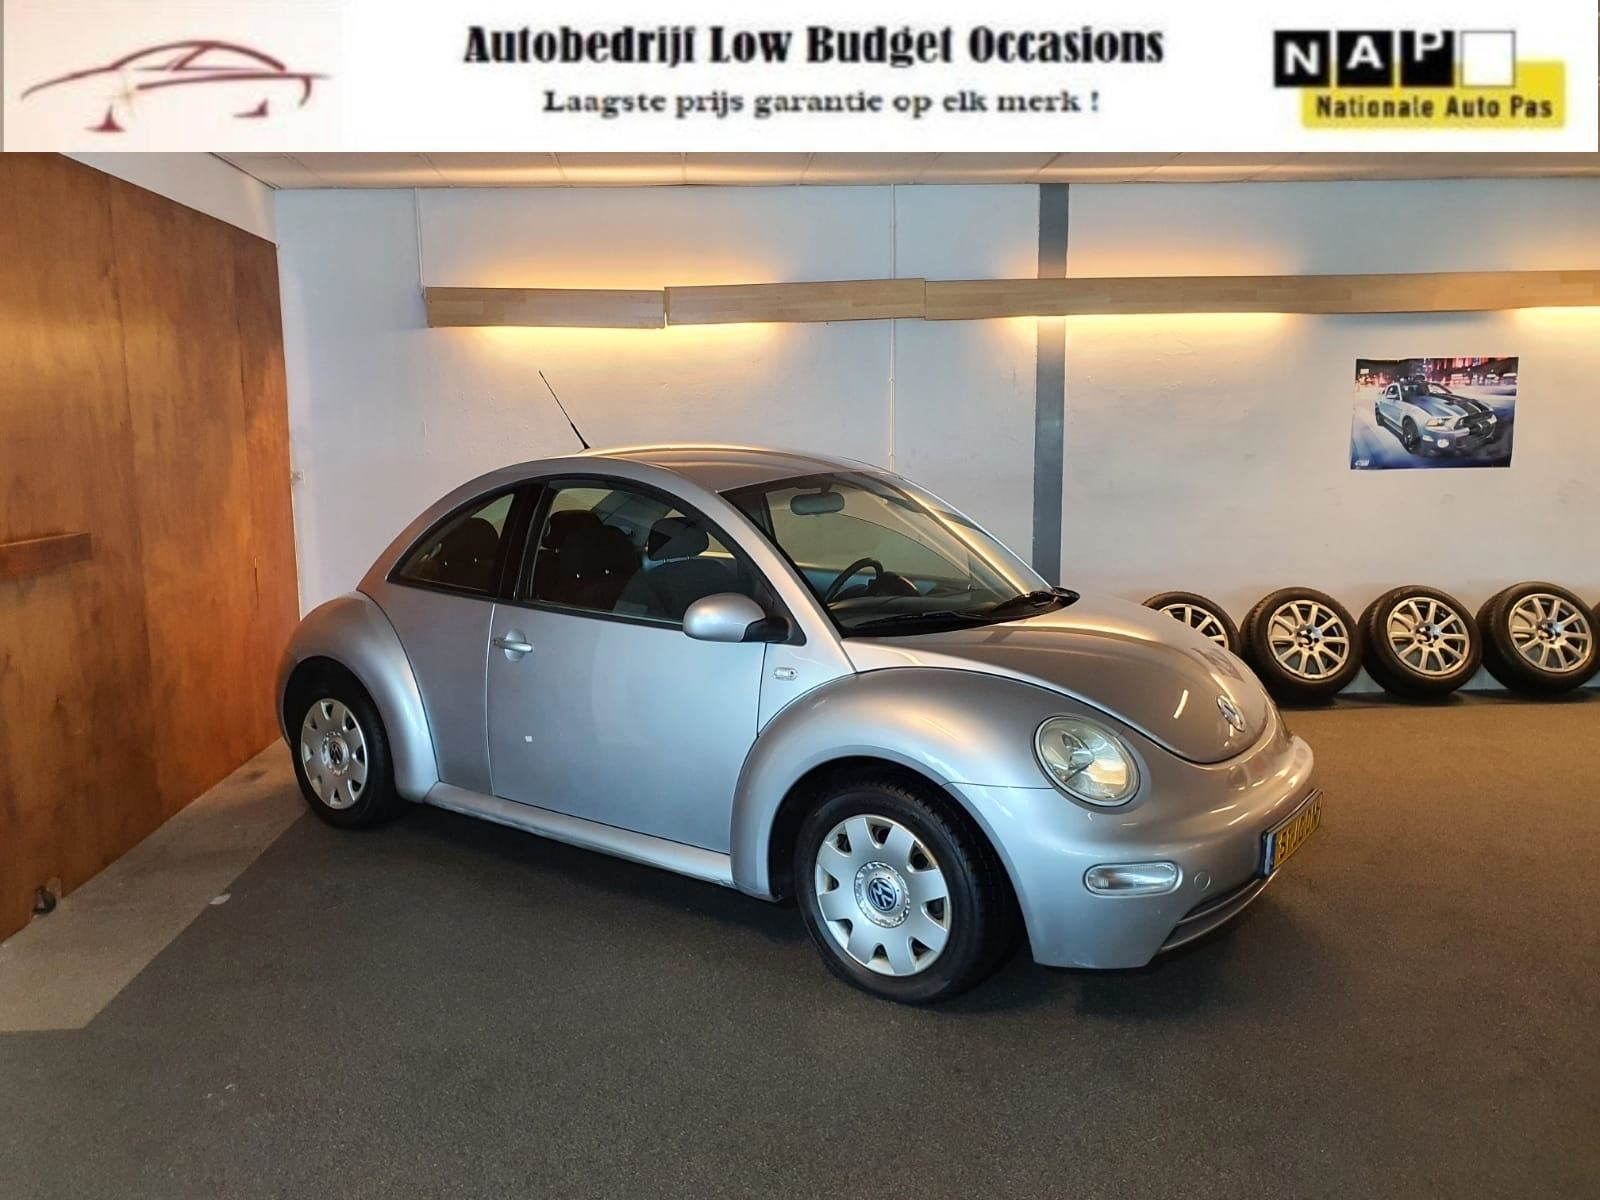 Volkswagen New Beetle occasion - Low Budget Occasions